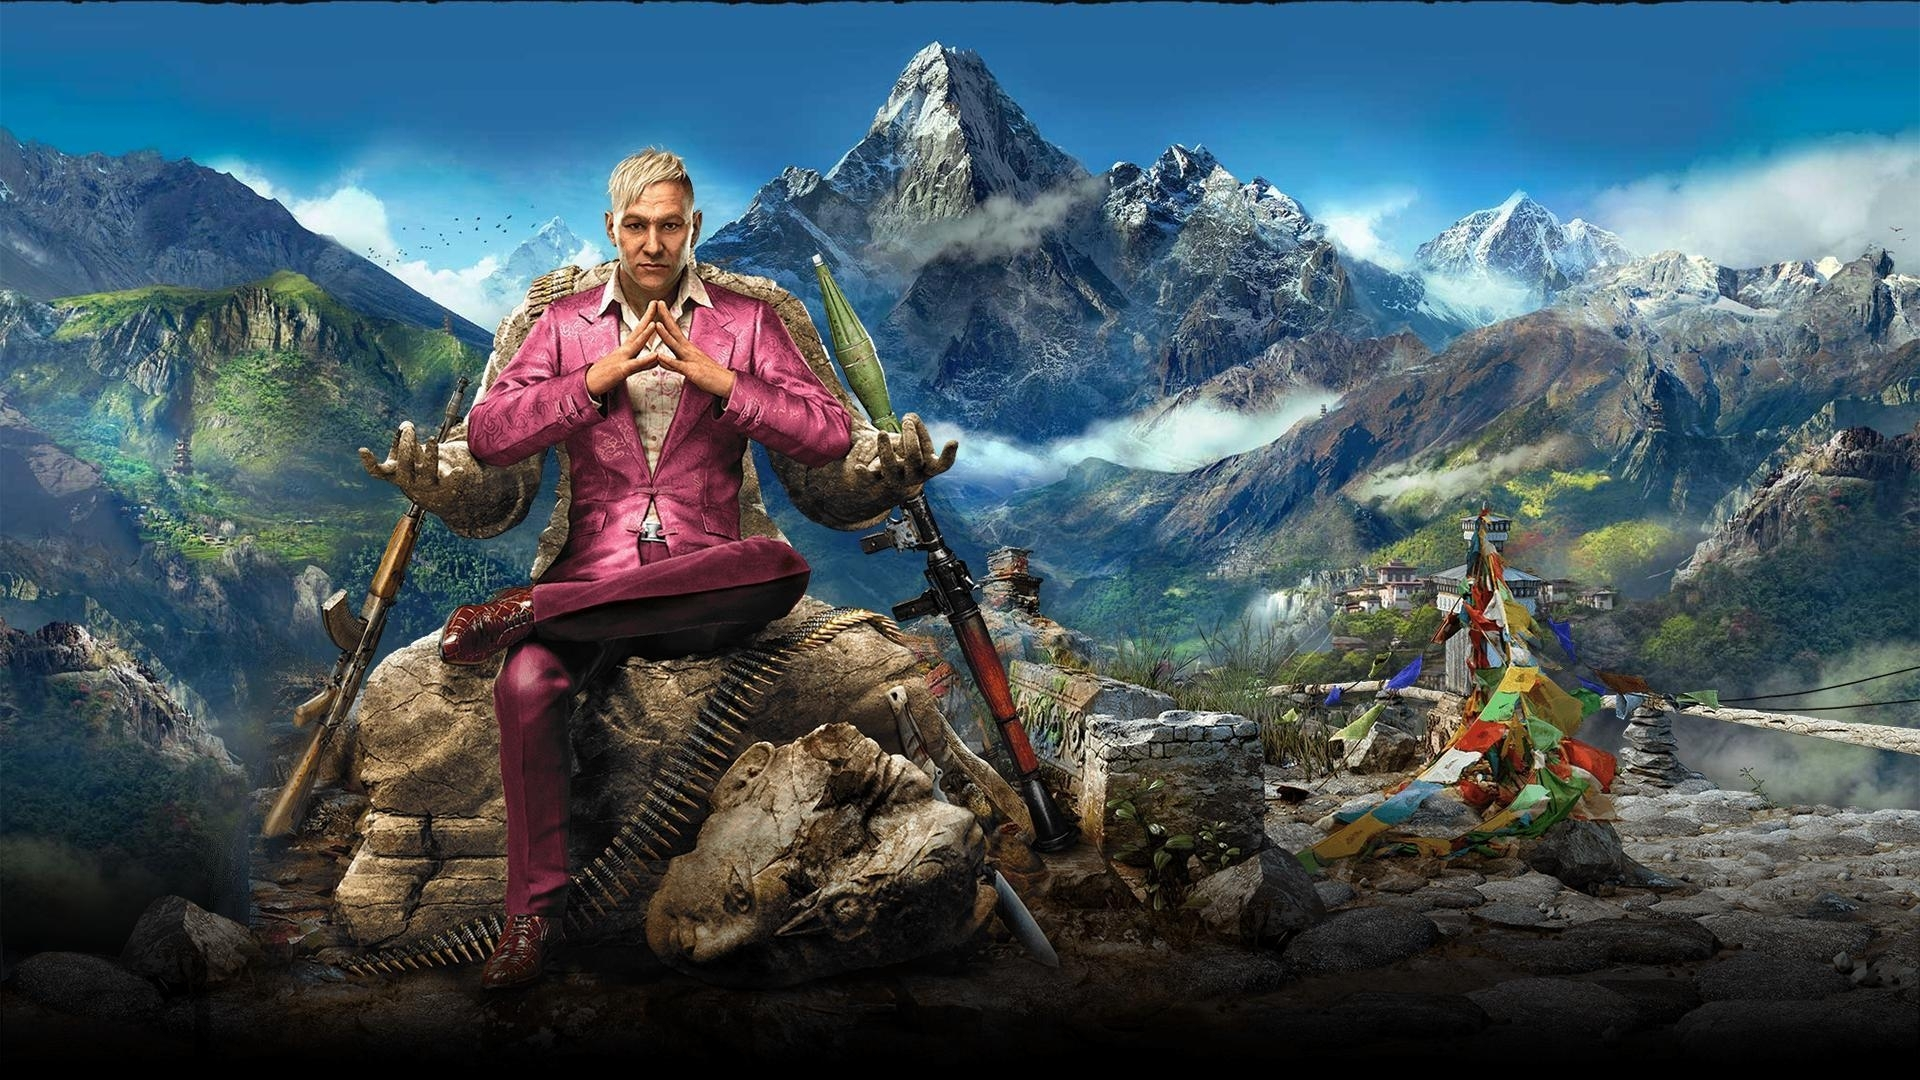 far cry 4 wallpapers - wallpaper cave